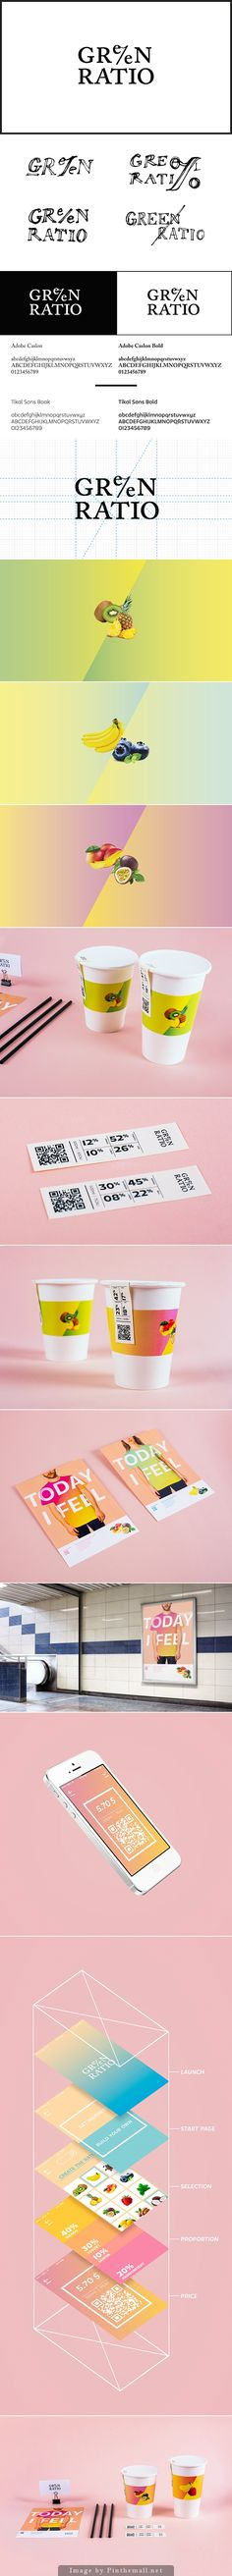 Proportion and relation between the ingredients.  The label represents the two main ingredients in the smoothie creating an interesting #packaging design concept. Curated by Packaging Diva PD created via https://www.behance.net/gallery/17553723/Branding-Green-Ratio